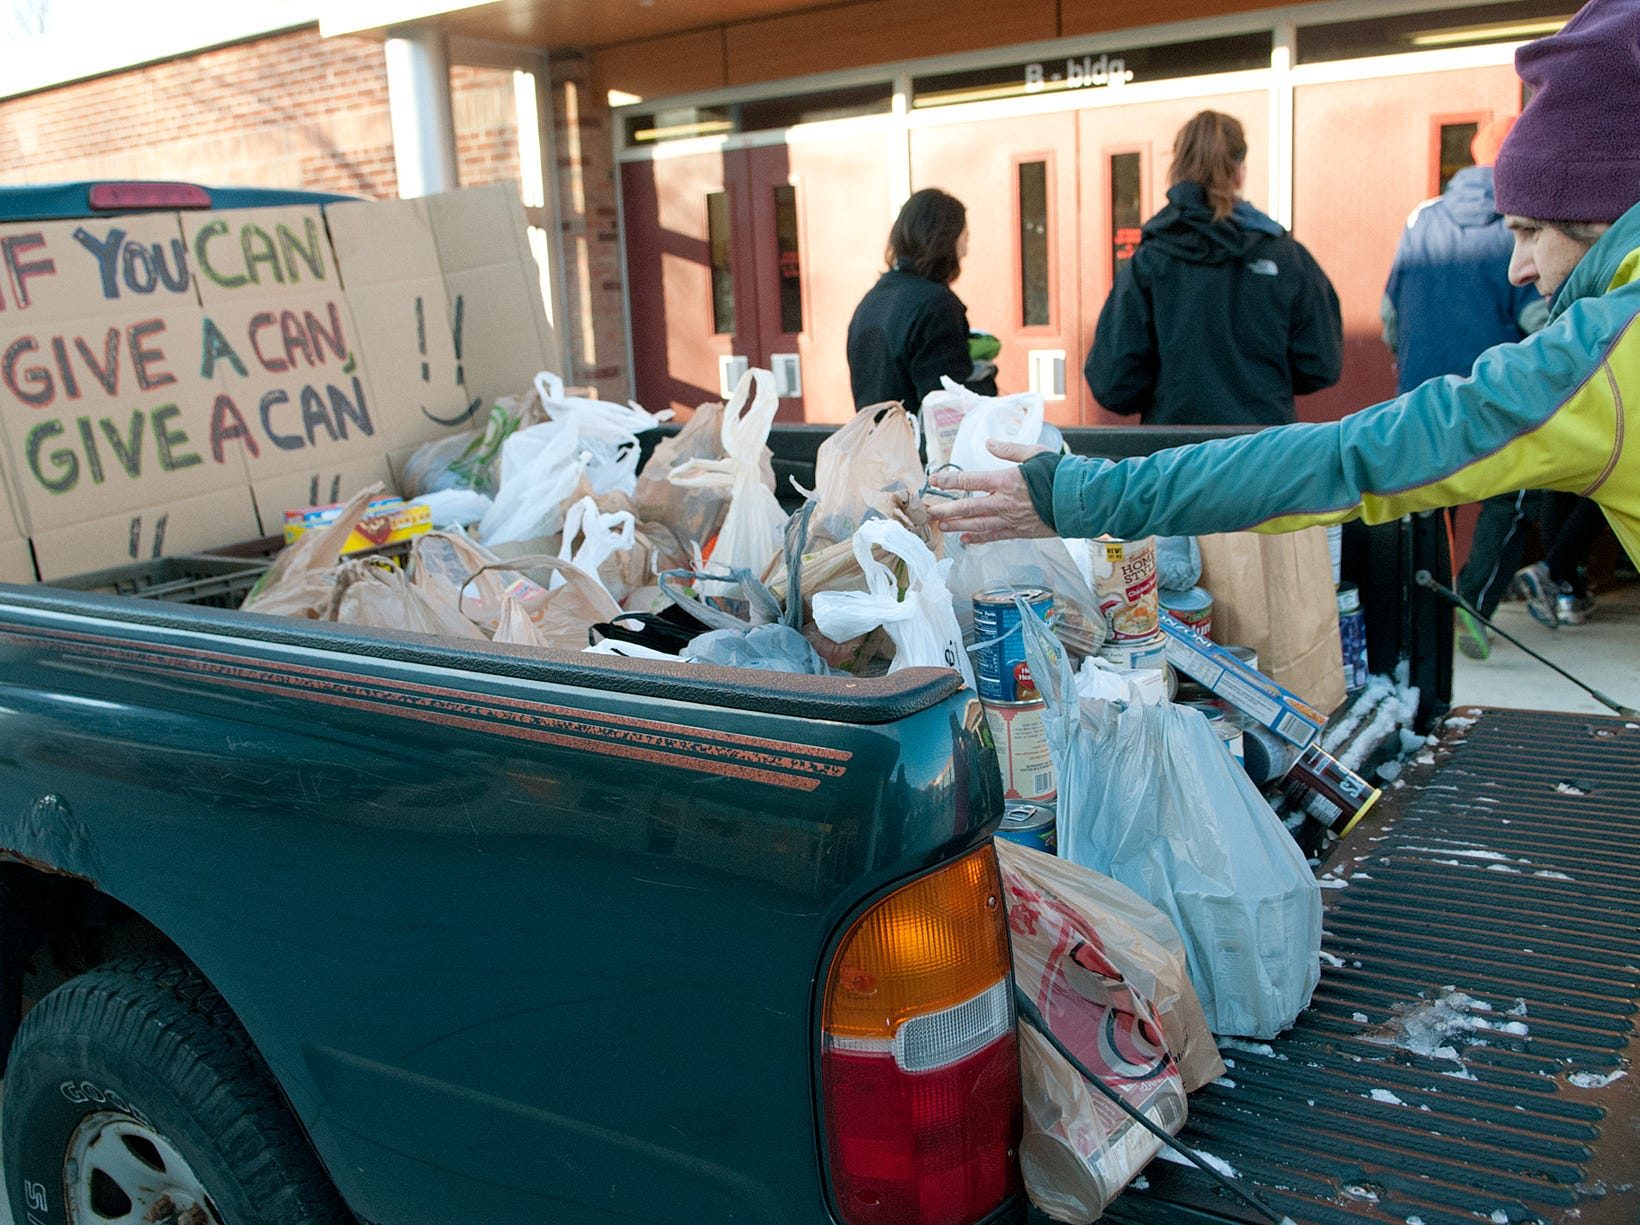 From 2013: More than 600 cans of food were donated by participants to Loaves & Fishes in the traditional charity run. The Finger Lakes Runners Club 41st Annual Thanksgiving Day Turkey Trot.